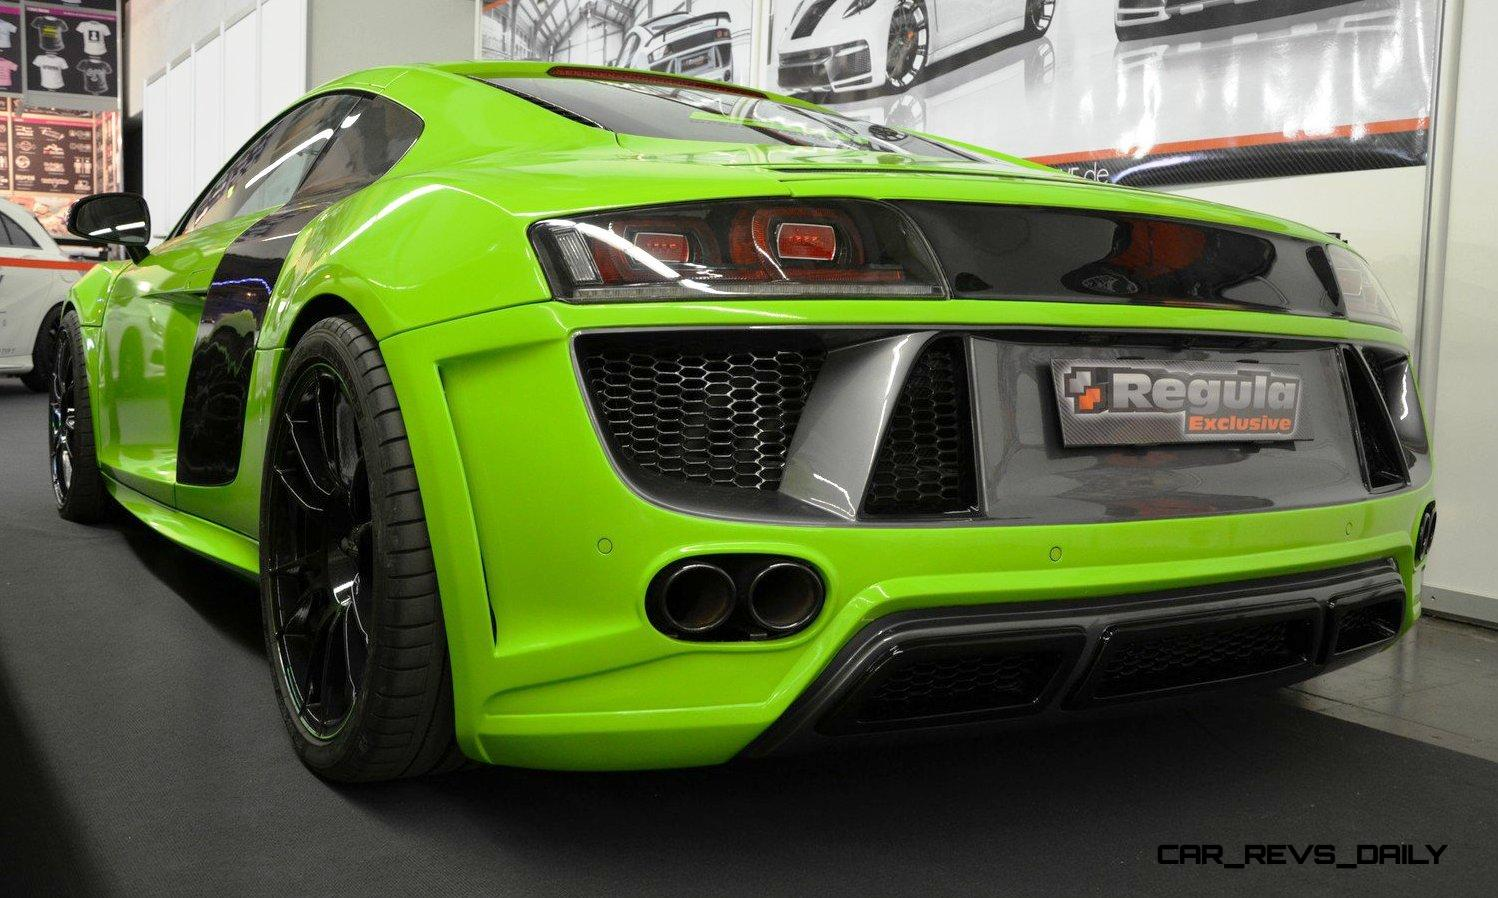 Performance Cars For Sale >> REGULA EXCLUSIVE Bodykits for Audi R8, Porsche Panamera and Porsche Cayenne Are Wild!